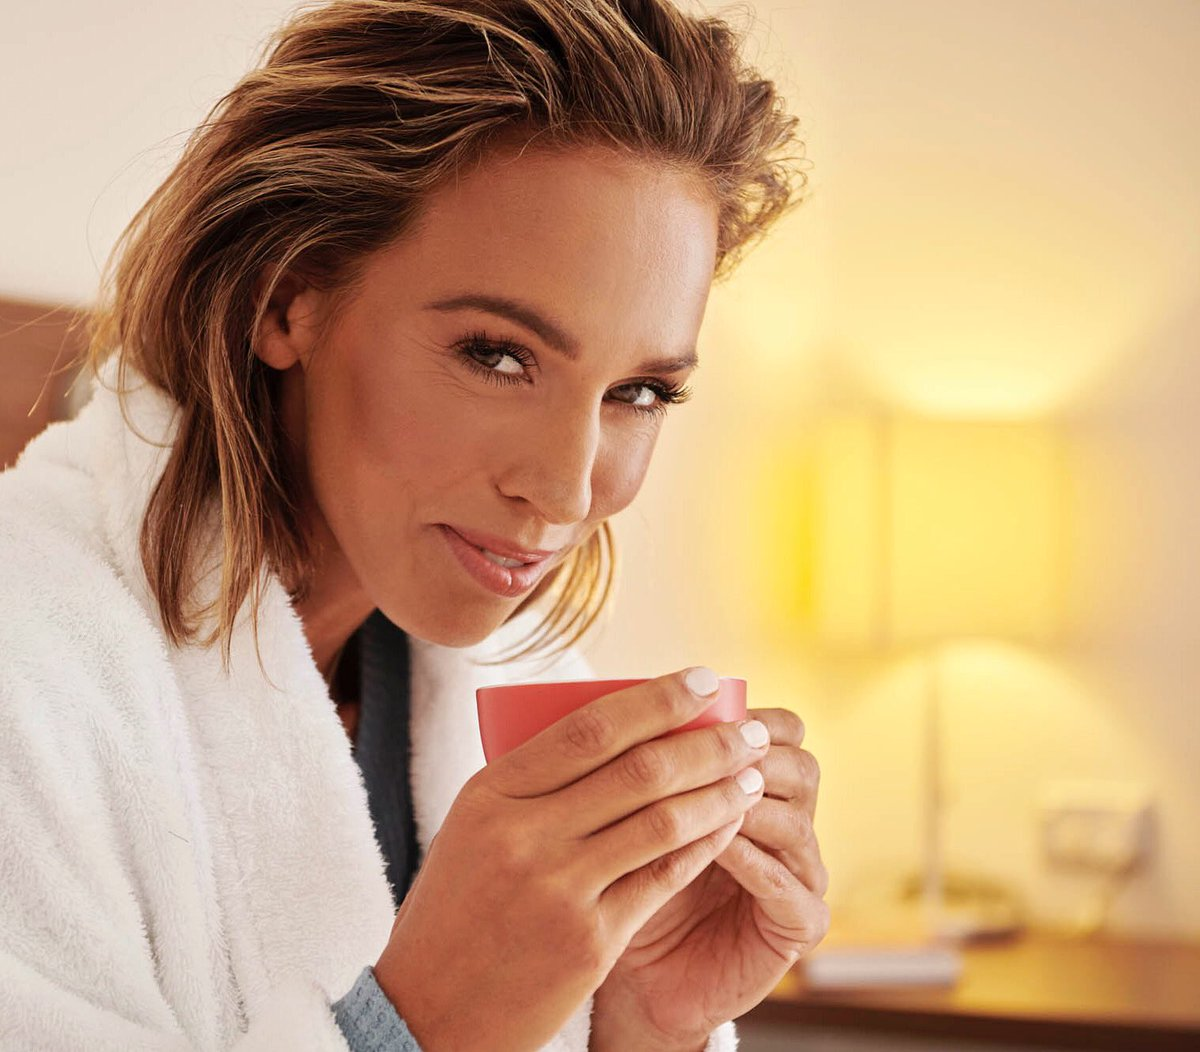 How good is an afternoon cuppa and putting up the feet👌treat yourself @All Novotel's to a little R&R they help keep life in Balance! #InBalanceByNovotel https://t.co/xx2bgMmXFi